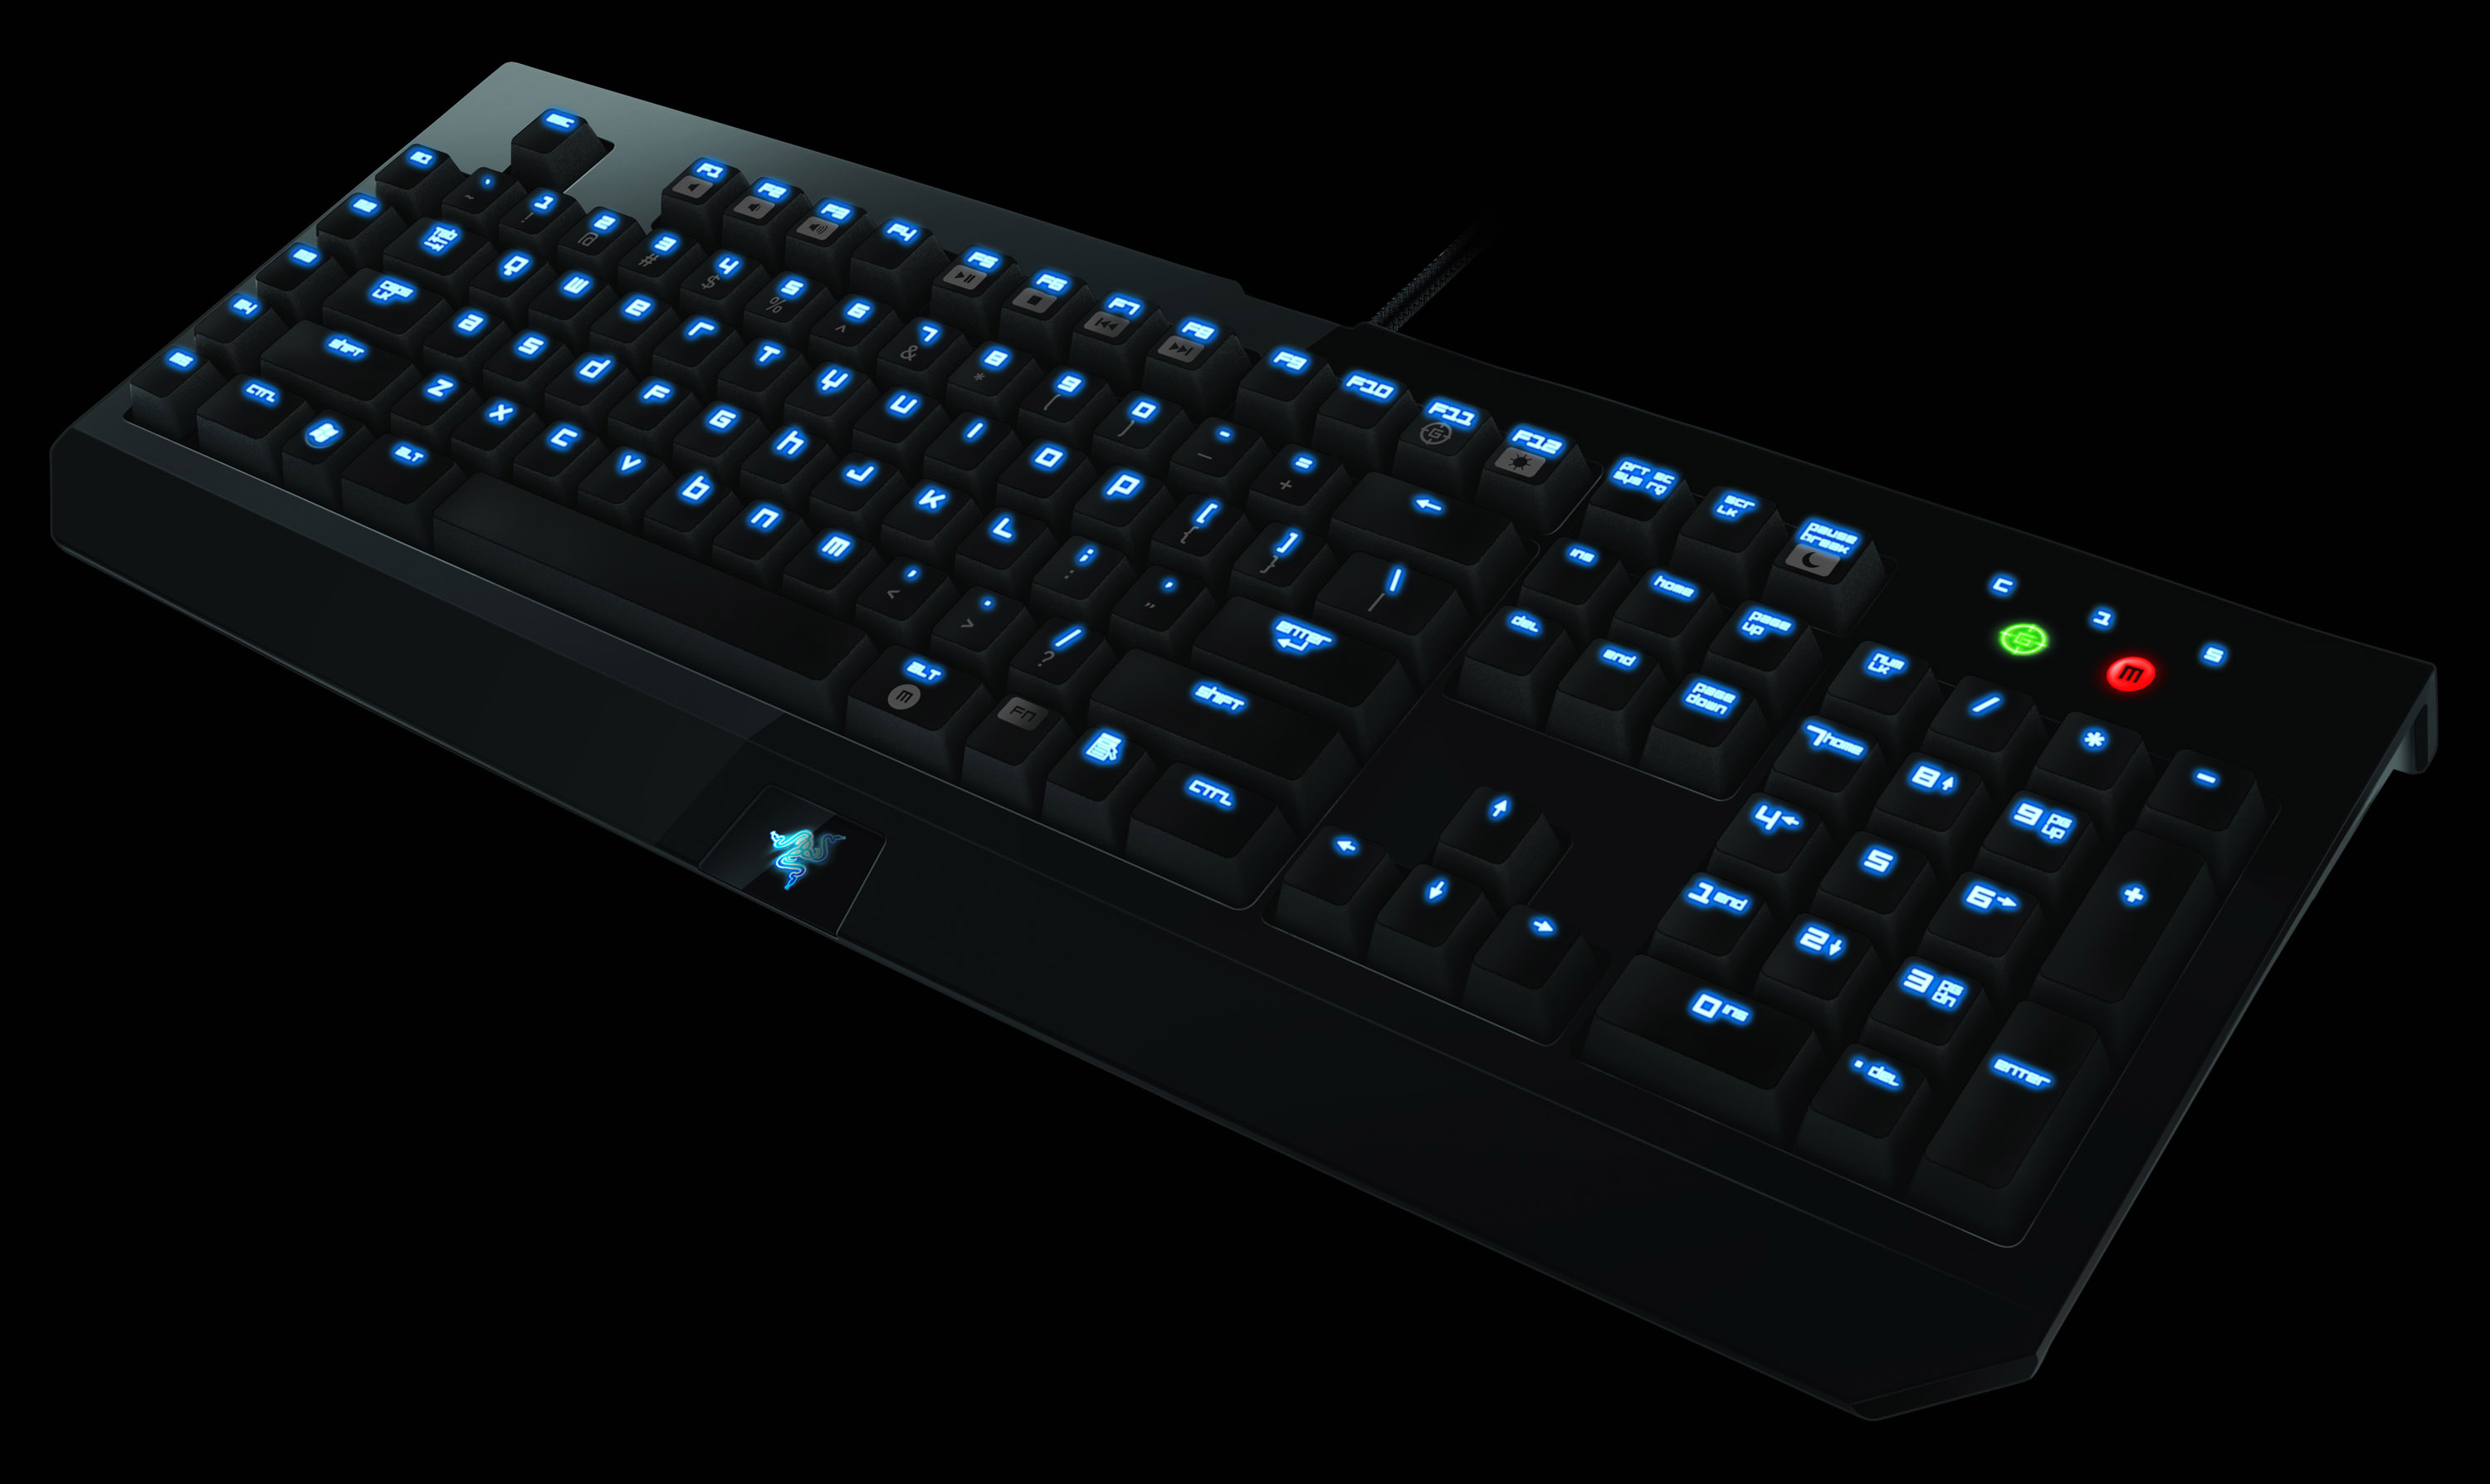 Hands On With A Razer Blackwidow Are Mechanical